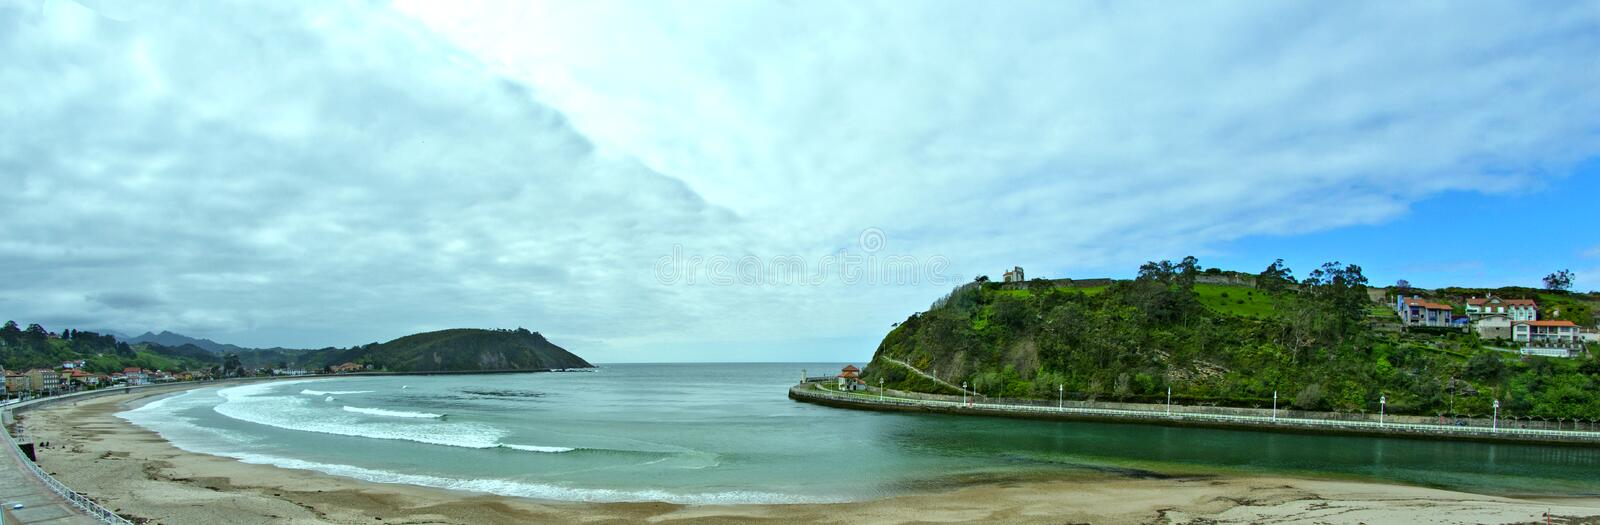 Santa marina beach, Ribadesella, Asturias, Spain royalty free stock photo